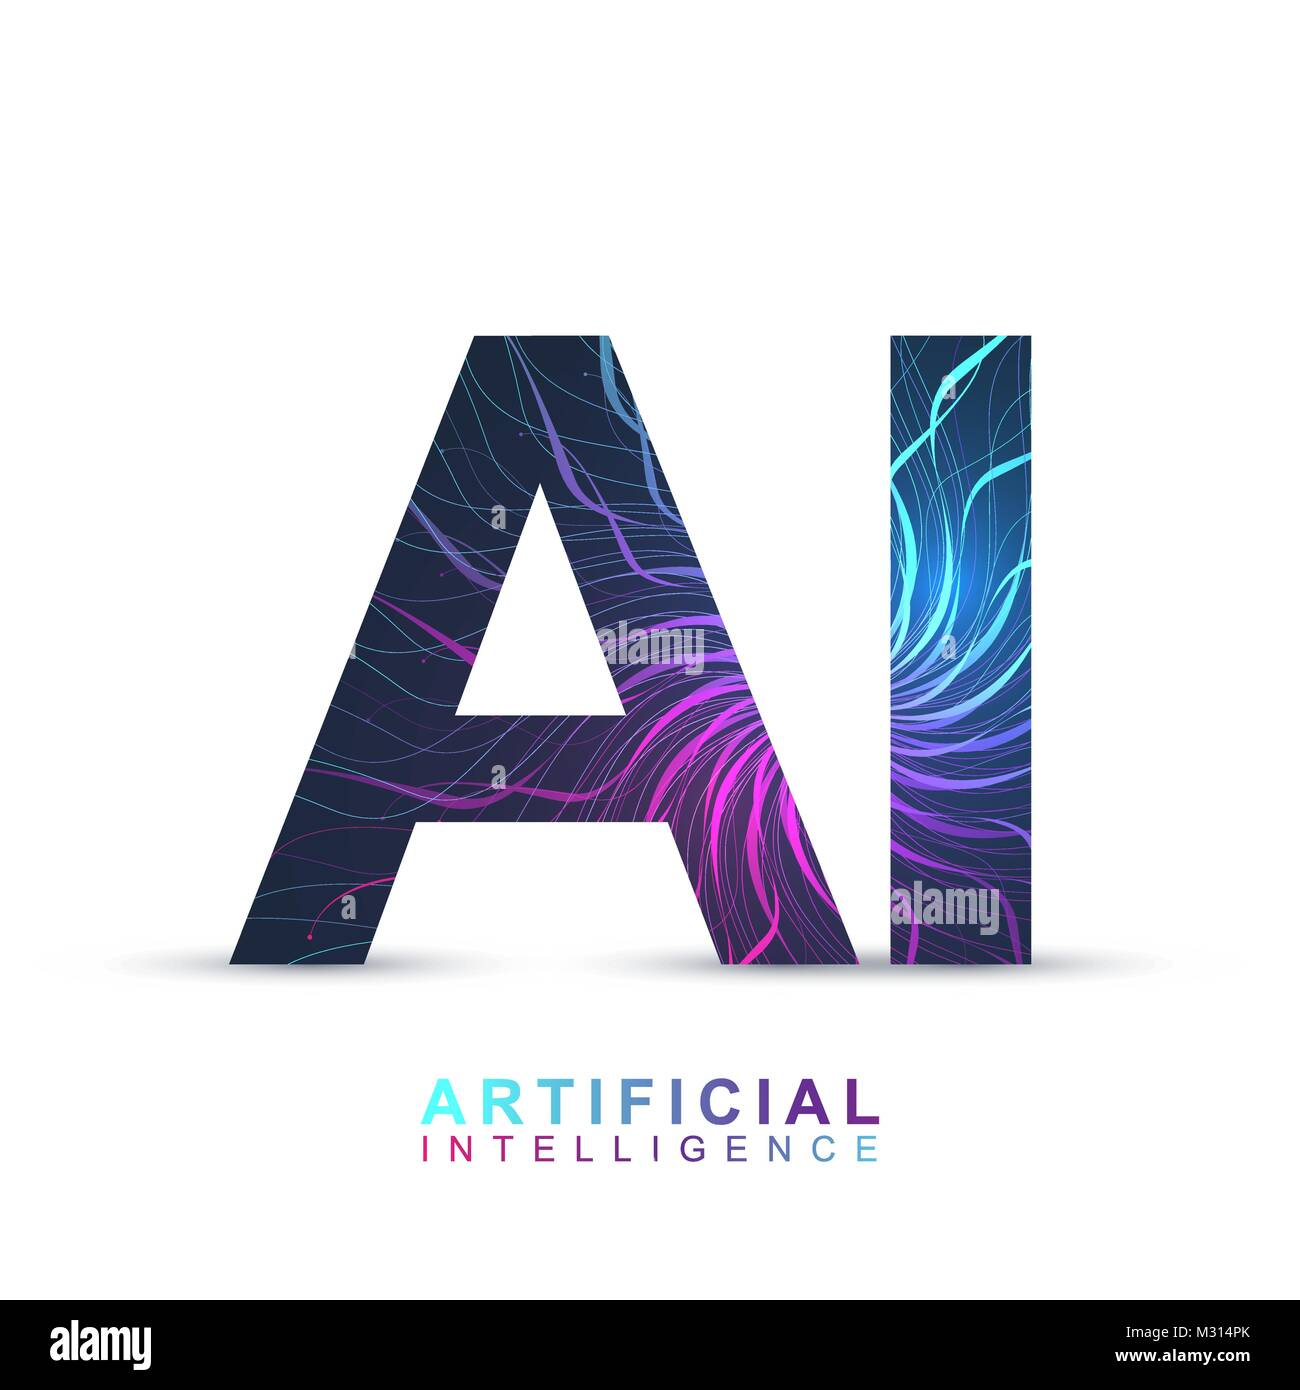 Machine Learning Artificial Intelligence Concept Stock